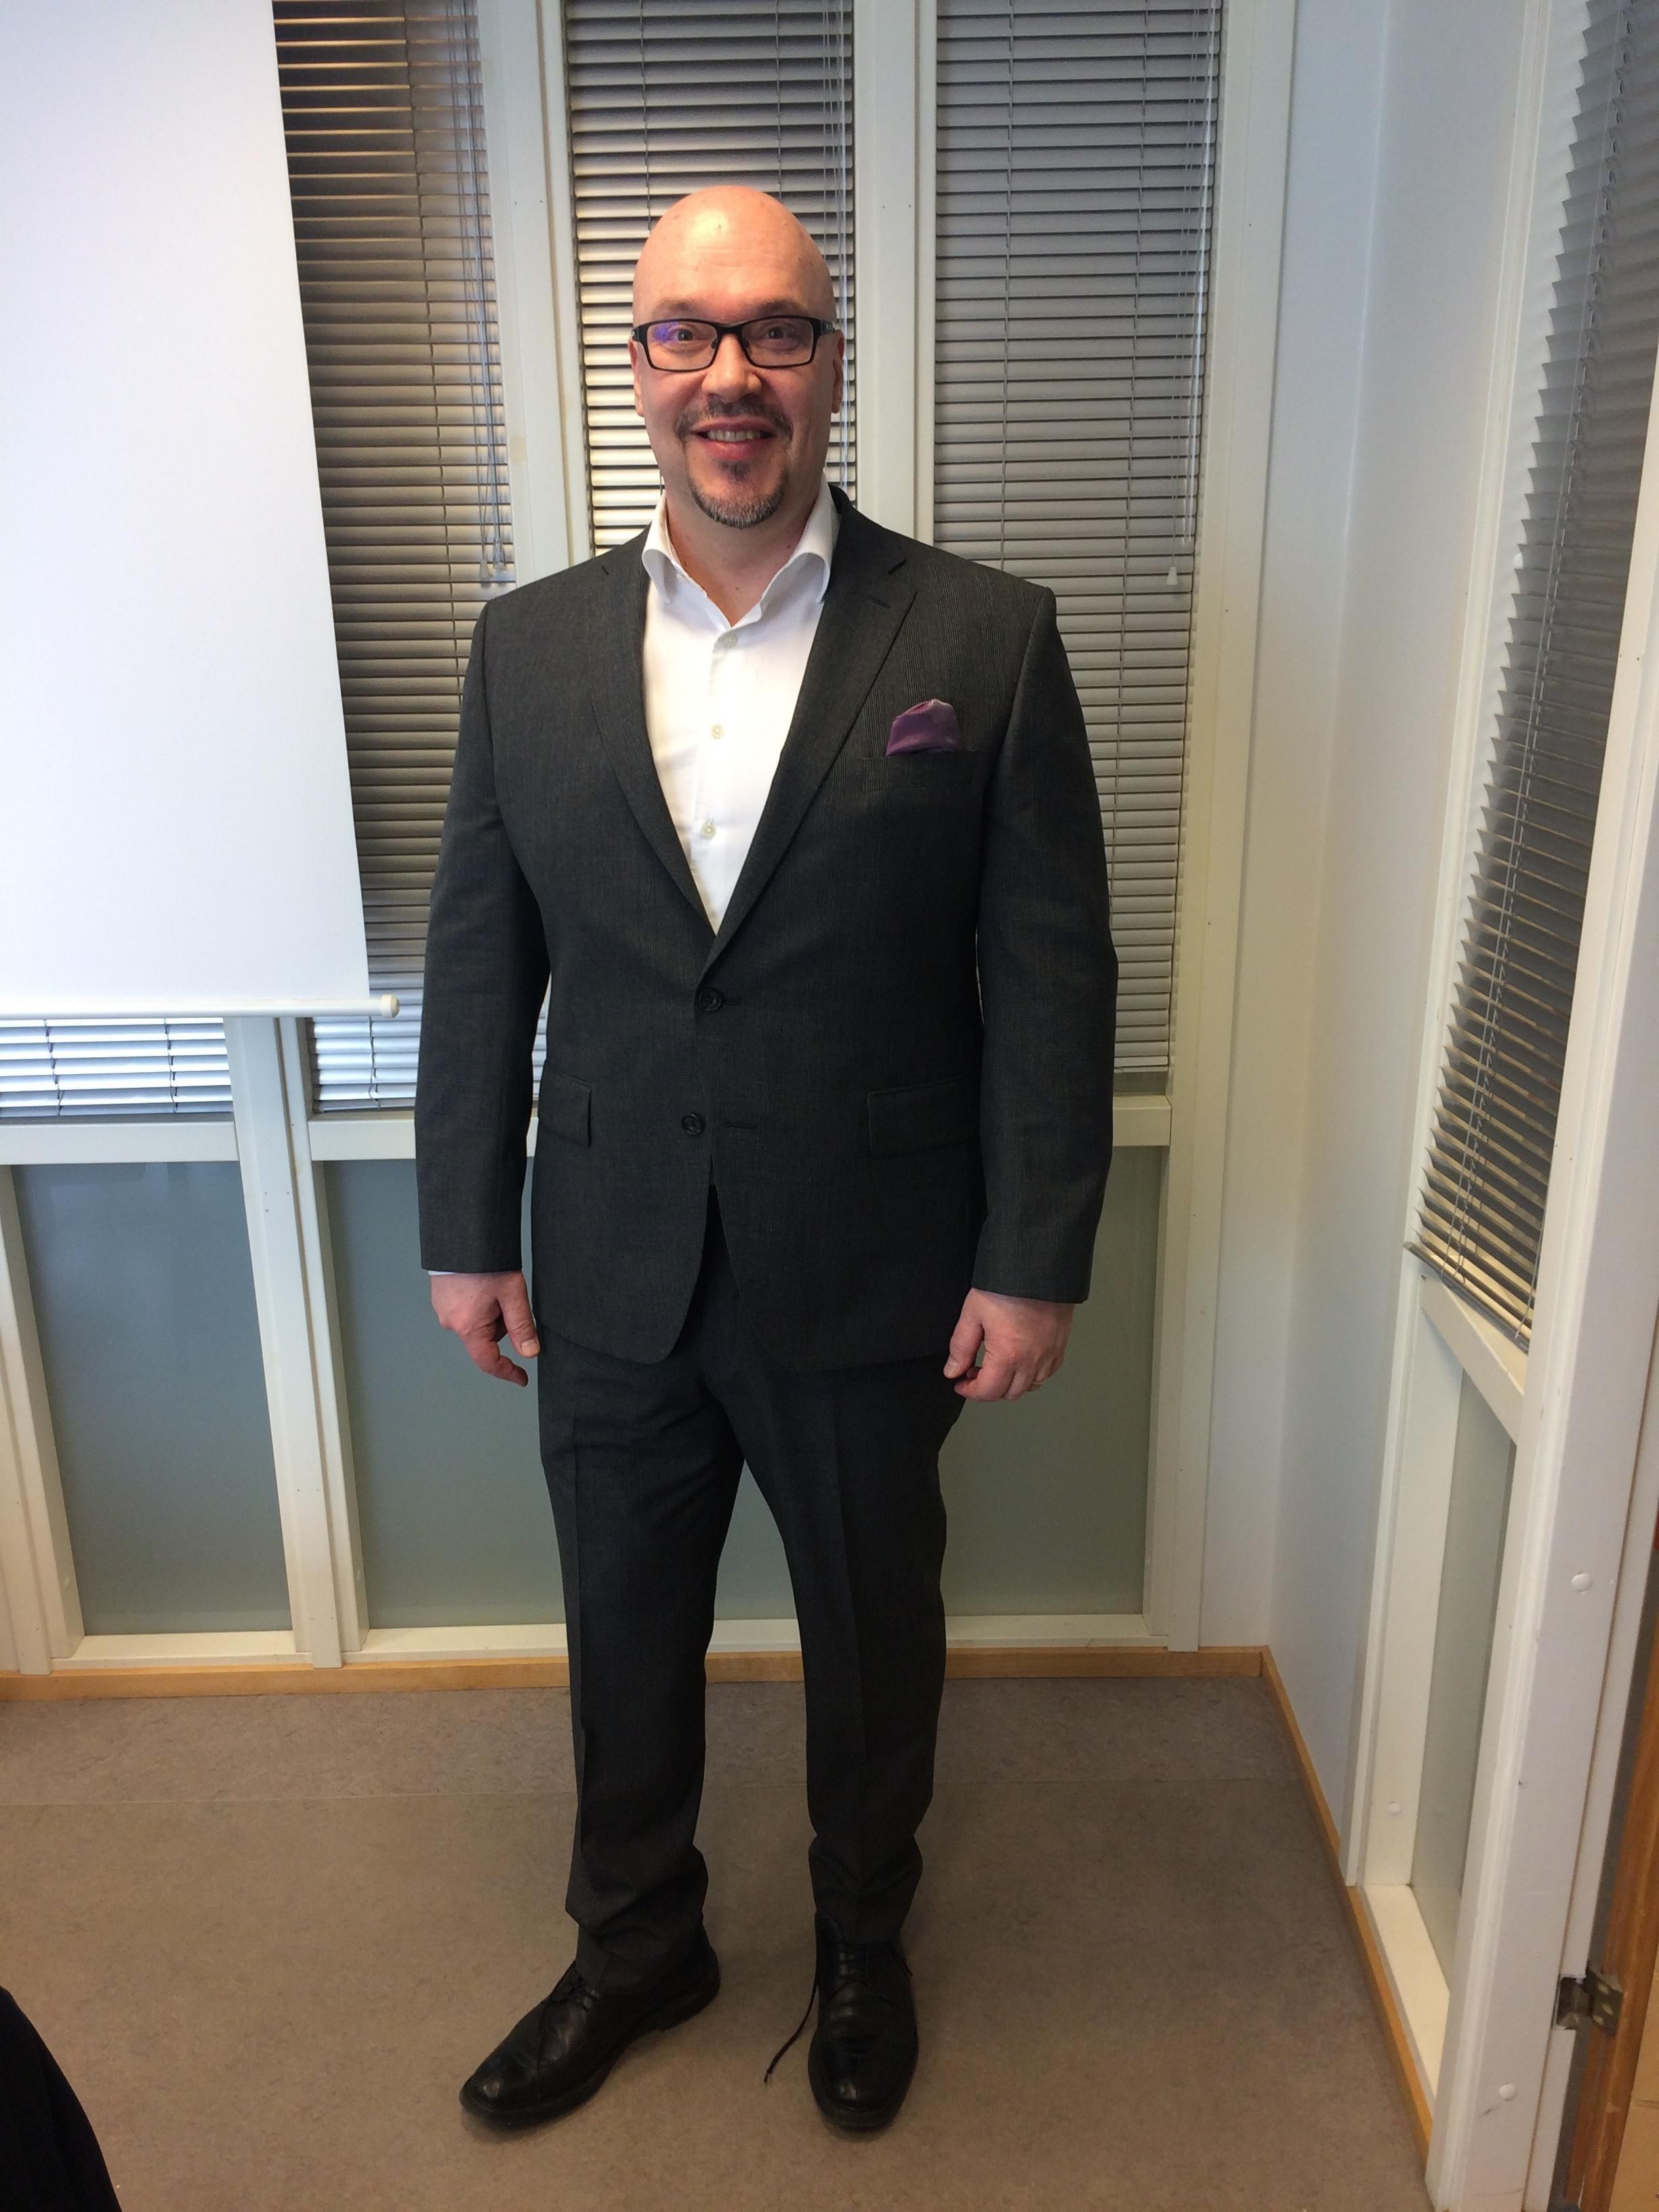 Jarmo Nieminen from Accunia is looking good in his bespoke suit by LGFG. The grey red check fabric is from our White Label line. Good choice!